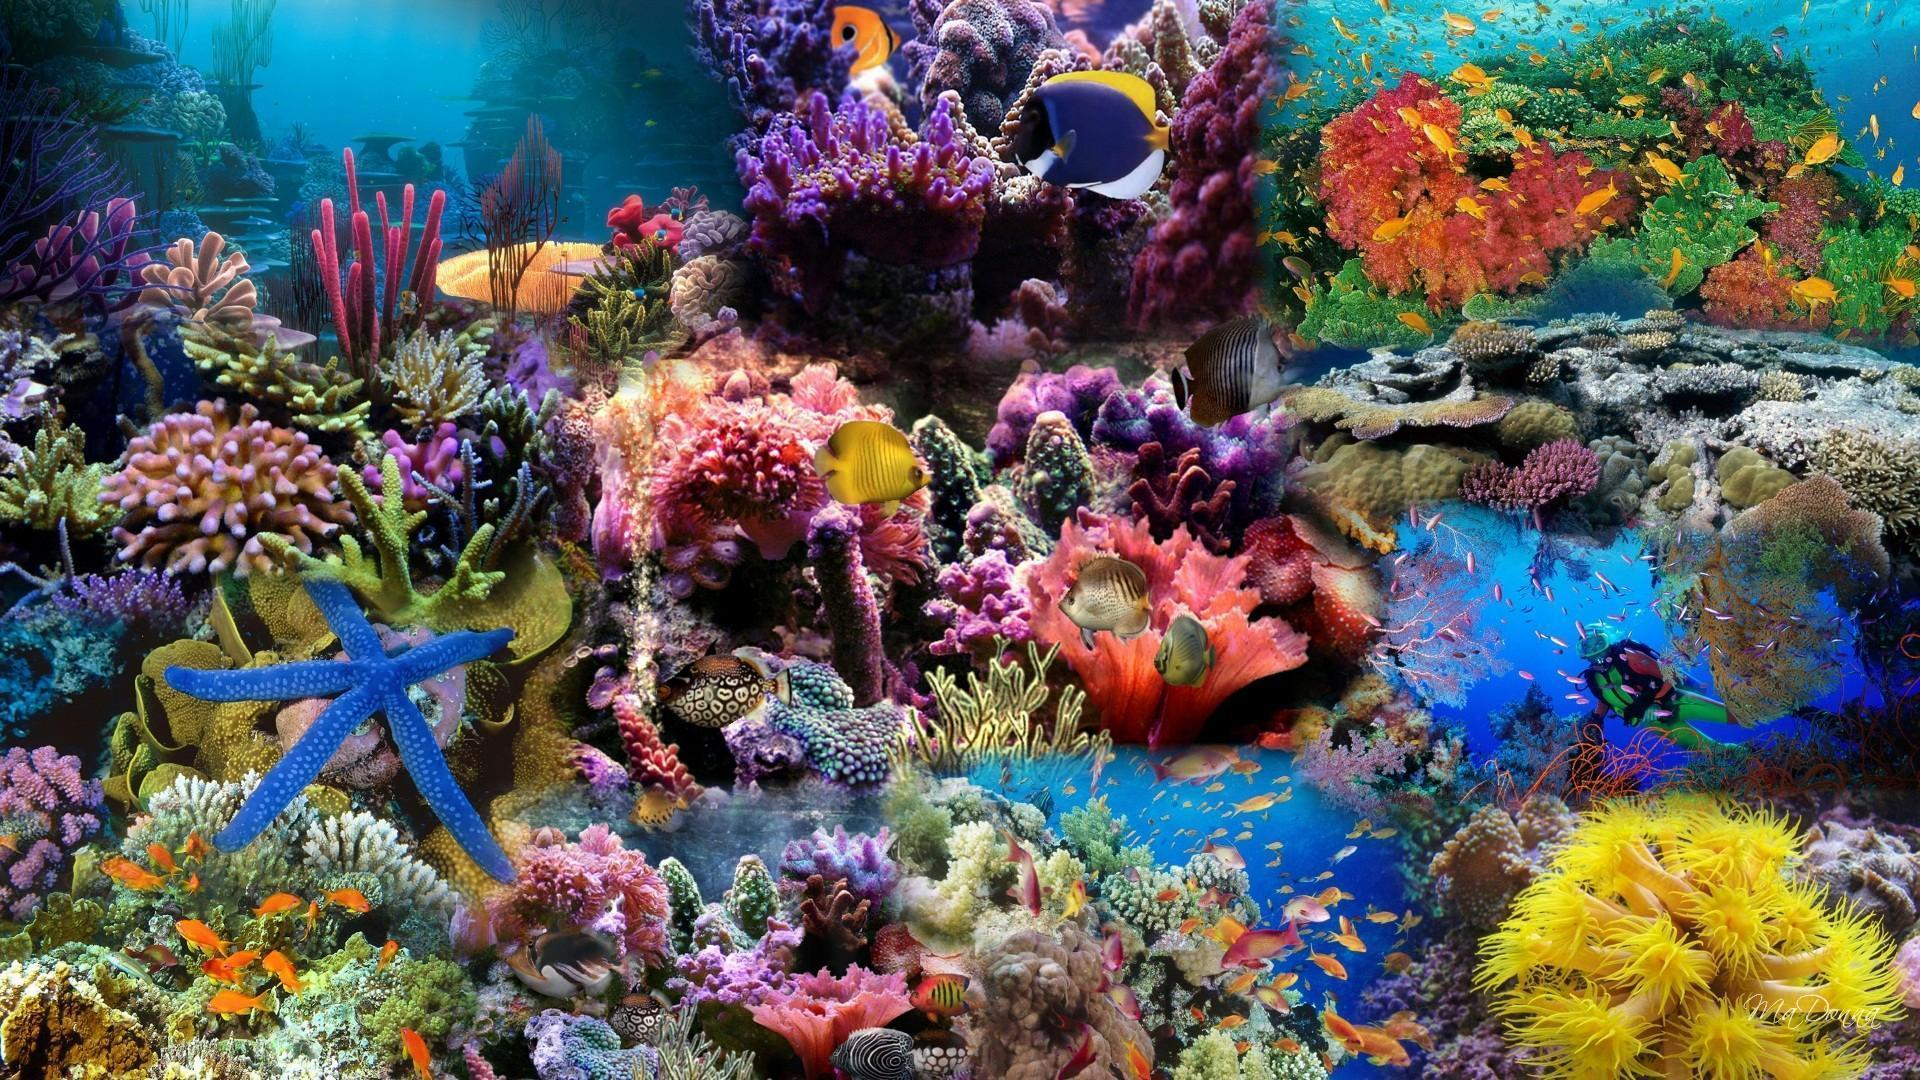 Hd Coral Reef Wallpaper Images amp Pictures   Becuo 1920x1080